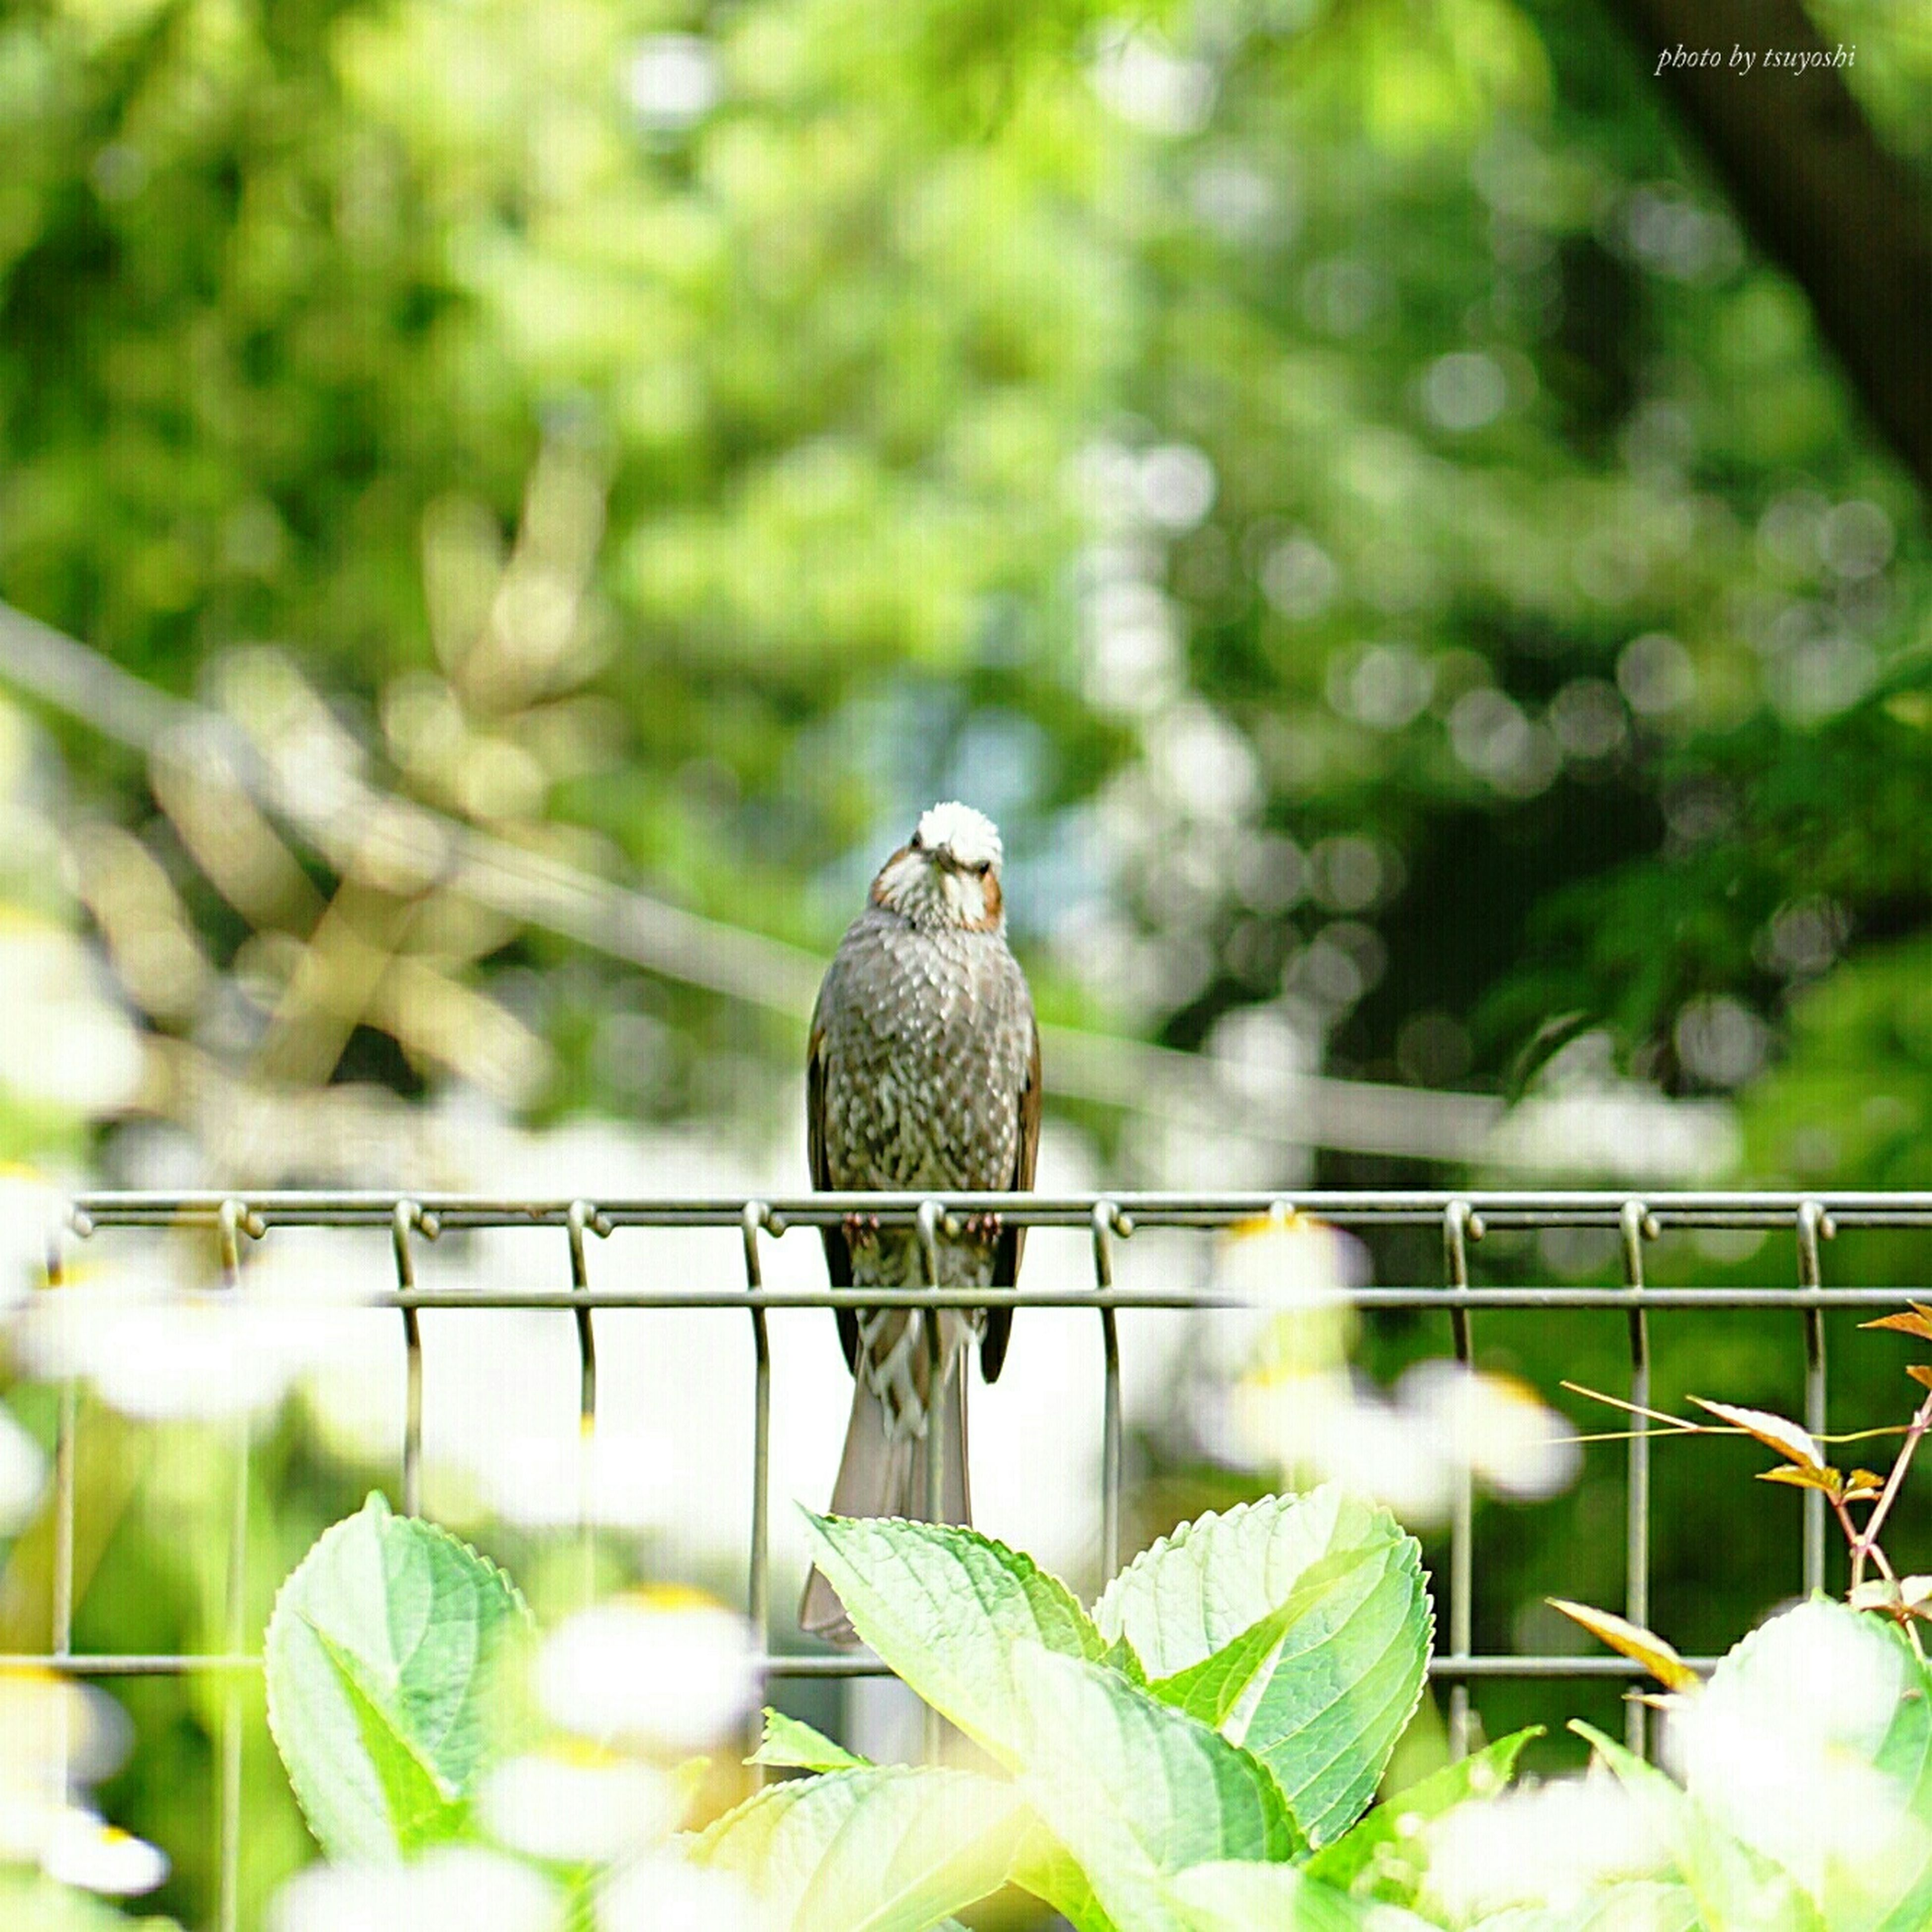 focus on foreground, animal themes, one animal, metal, fence, railing, close-up, animals in the wild, chainlink fence, leaf, green color, plant, wildlife, perching, bird, nature, selective focus, protection, day, outdoors